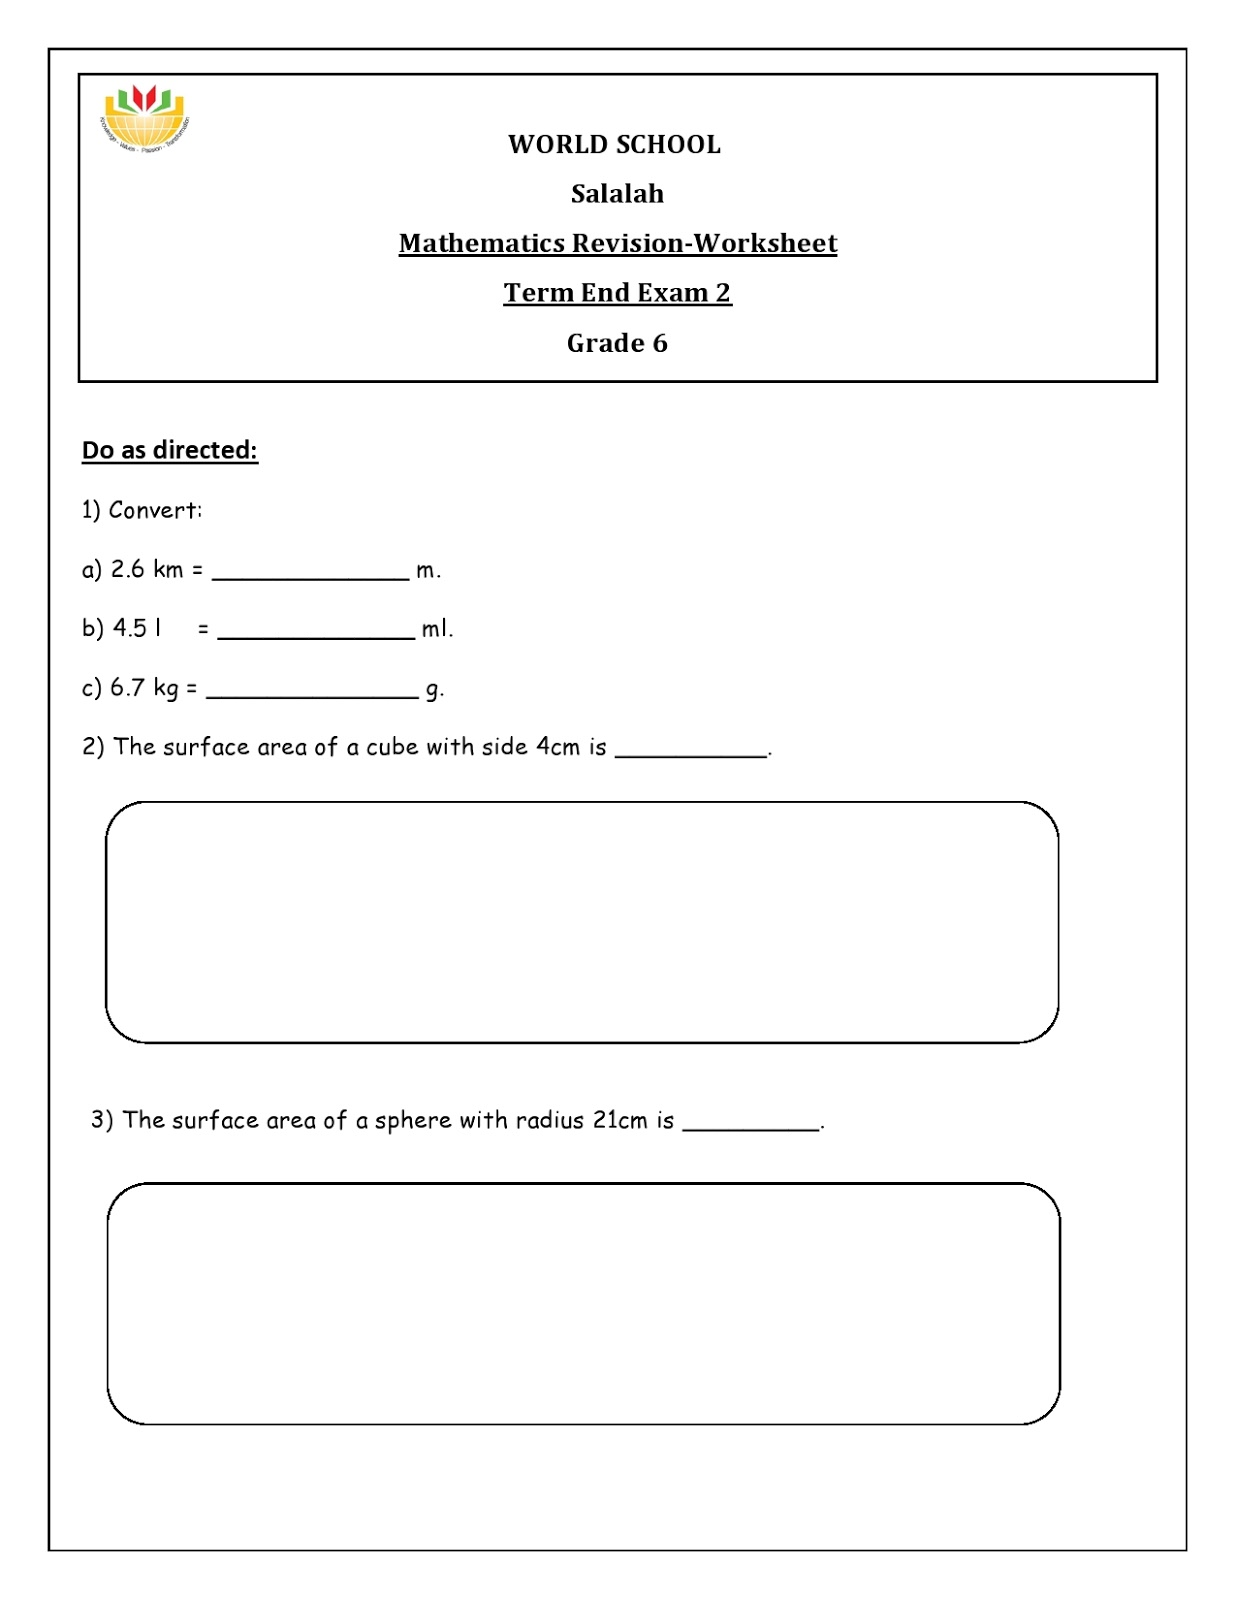 medium resolution of WORLD SCHOOL OMAN: Revision Worksheets for Grade 6 as on 09-05-2019